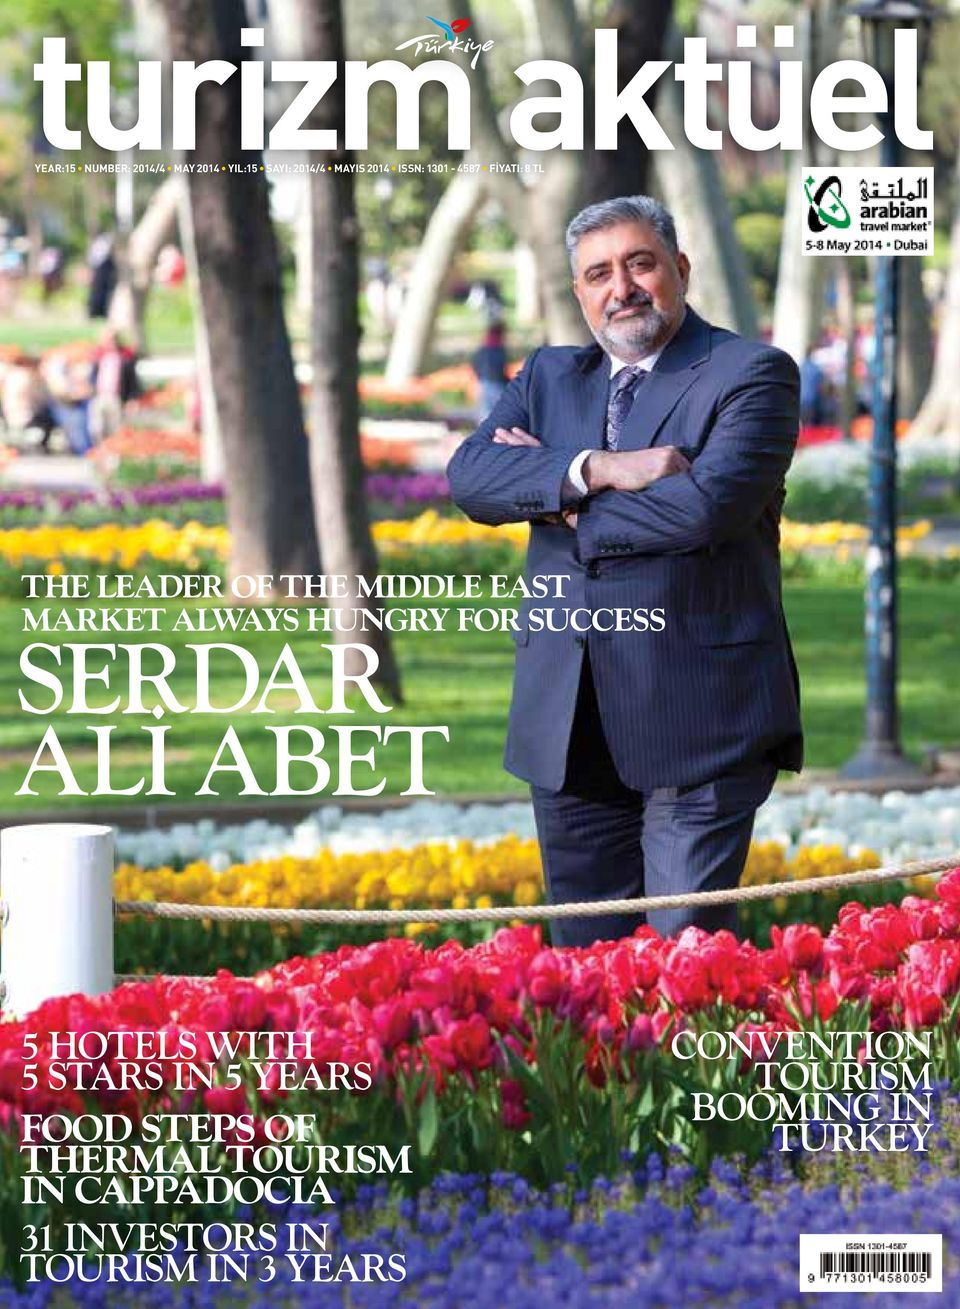 SUCCESS SERDAR ALİ ABET 5 HOTELS WITH 5 STARS IN 5 YEARS FOOD STEPS OF THERMAL